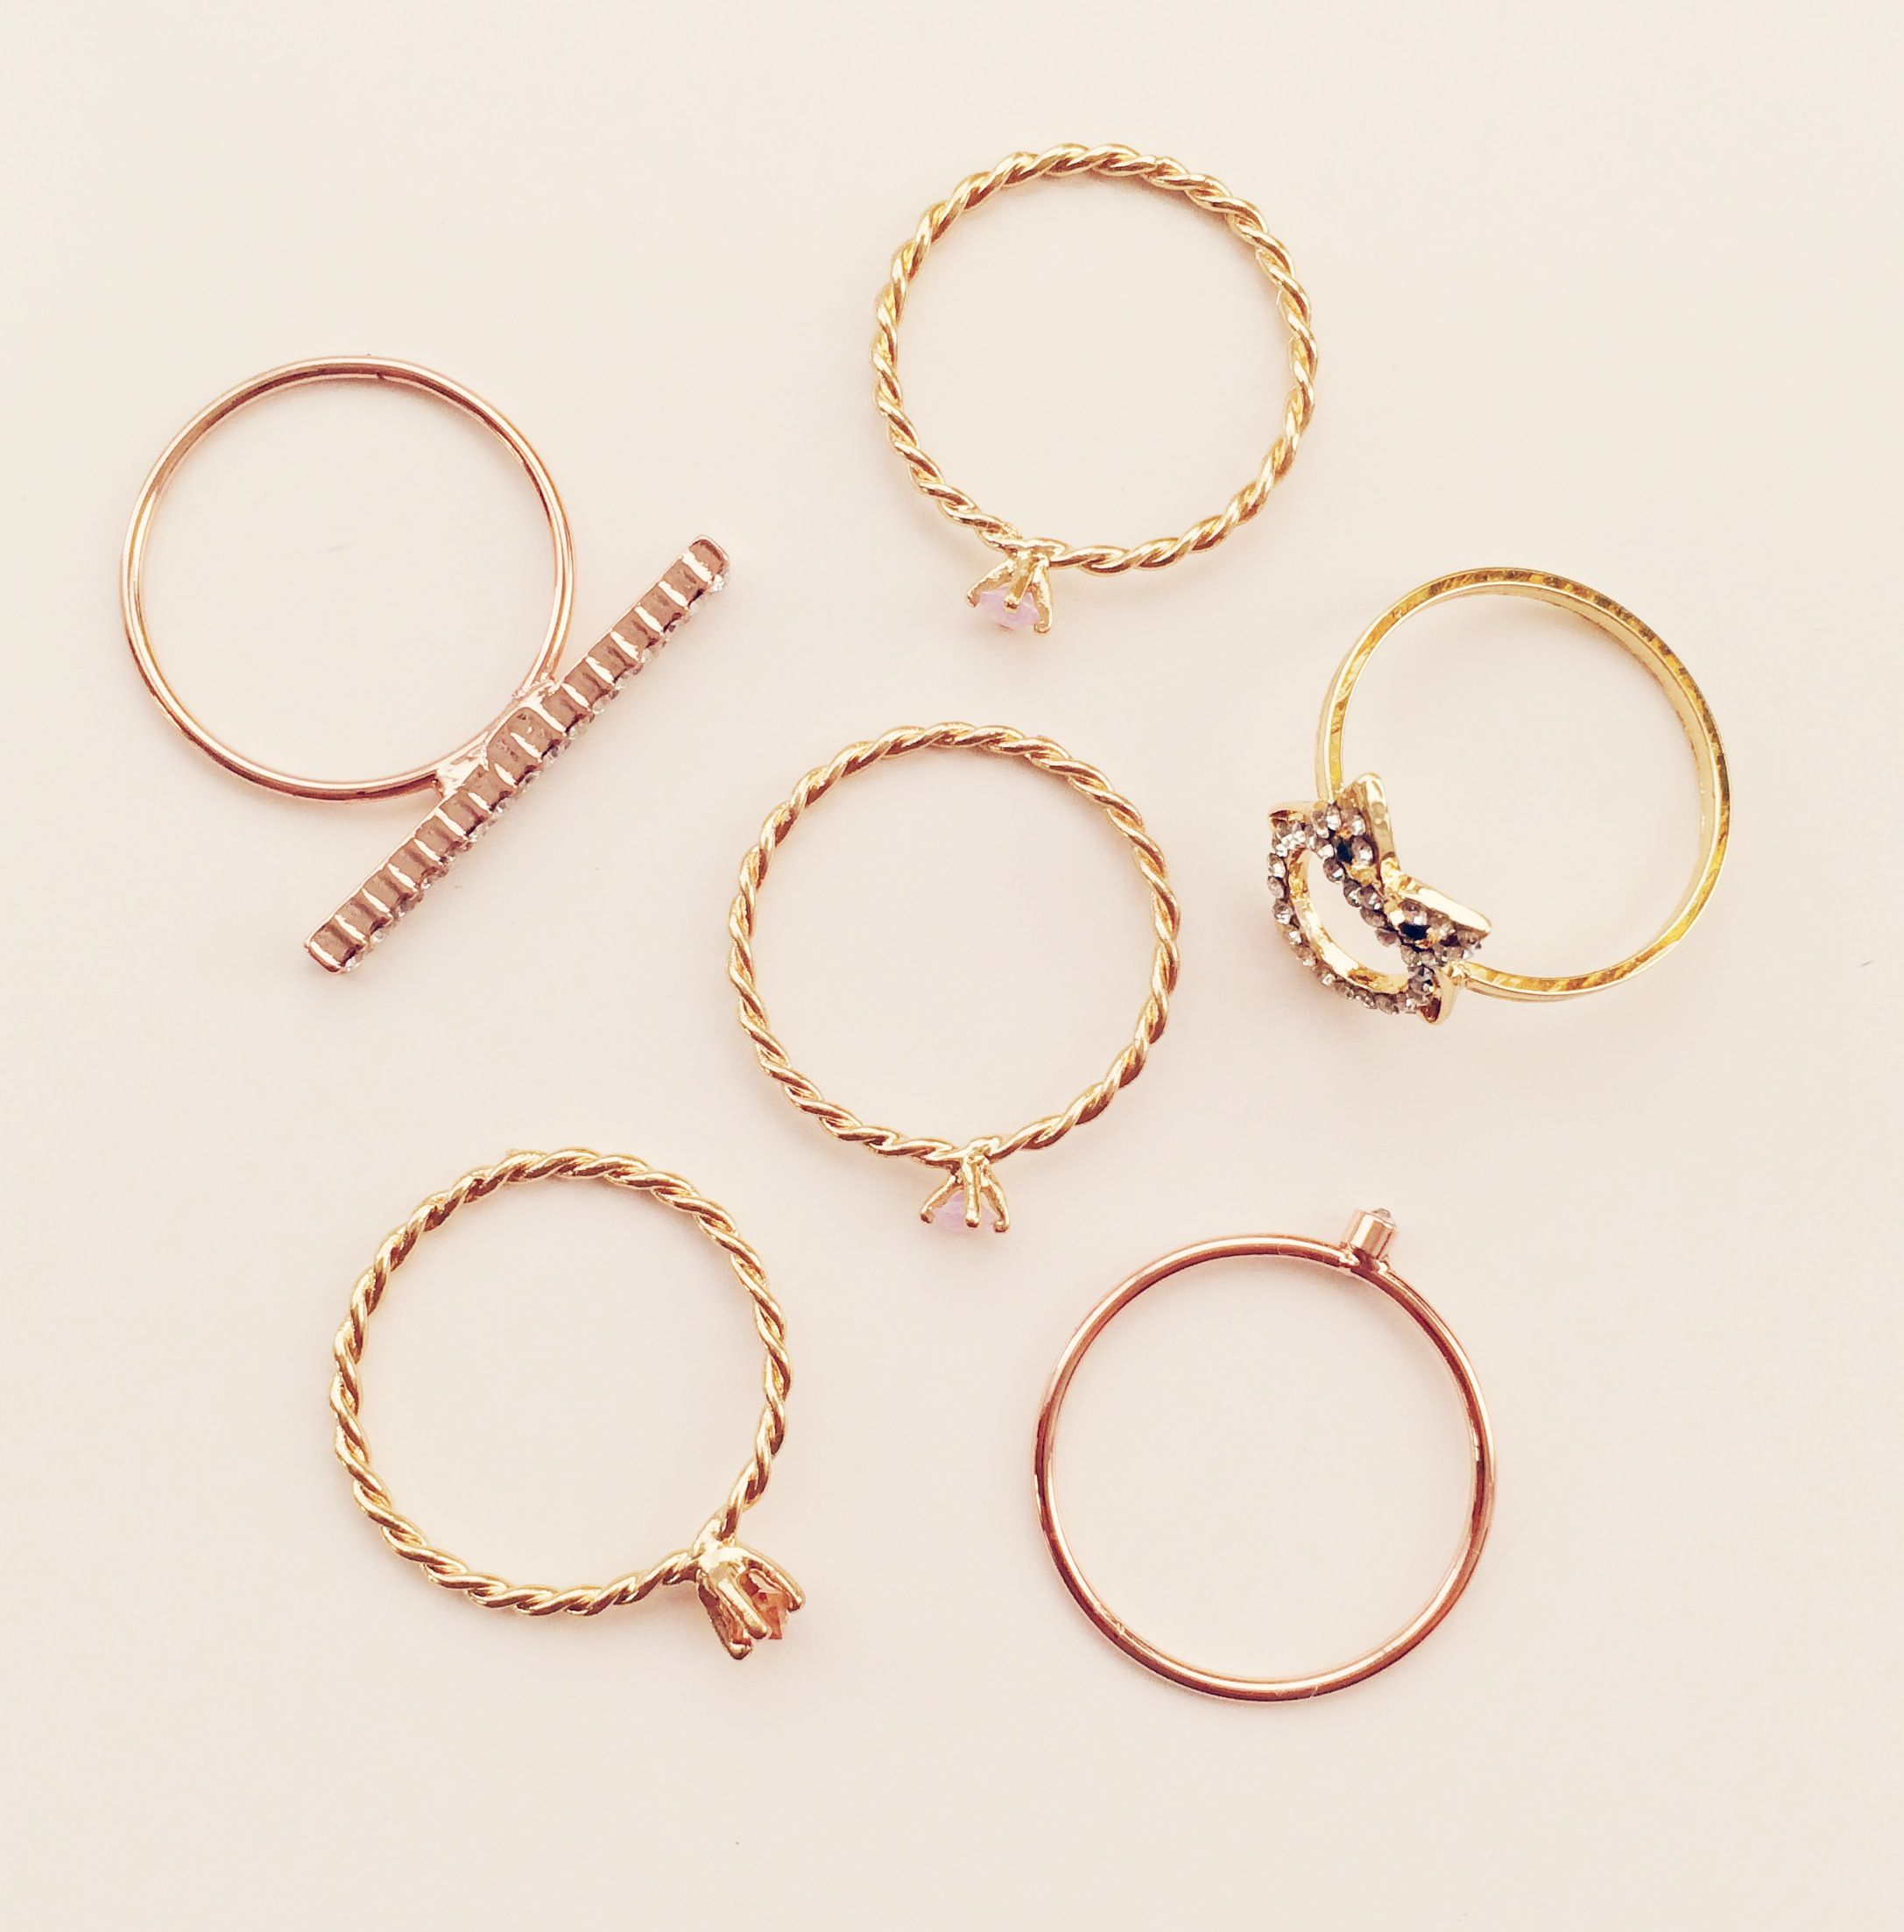 Kohls Jewelry Box Amusing Lc Lauren Conrad For Kohl's Stackable Rings $780  My Style And